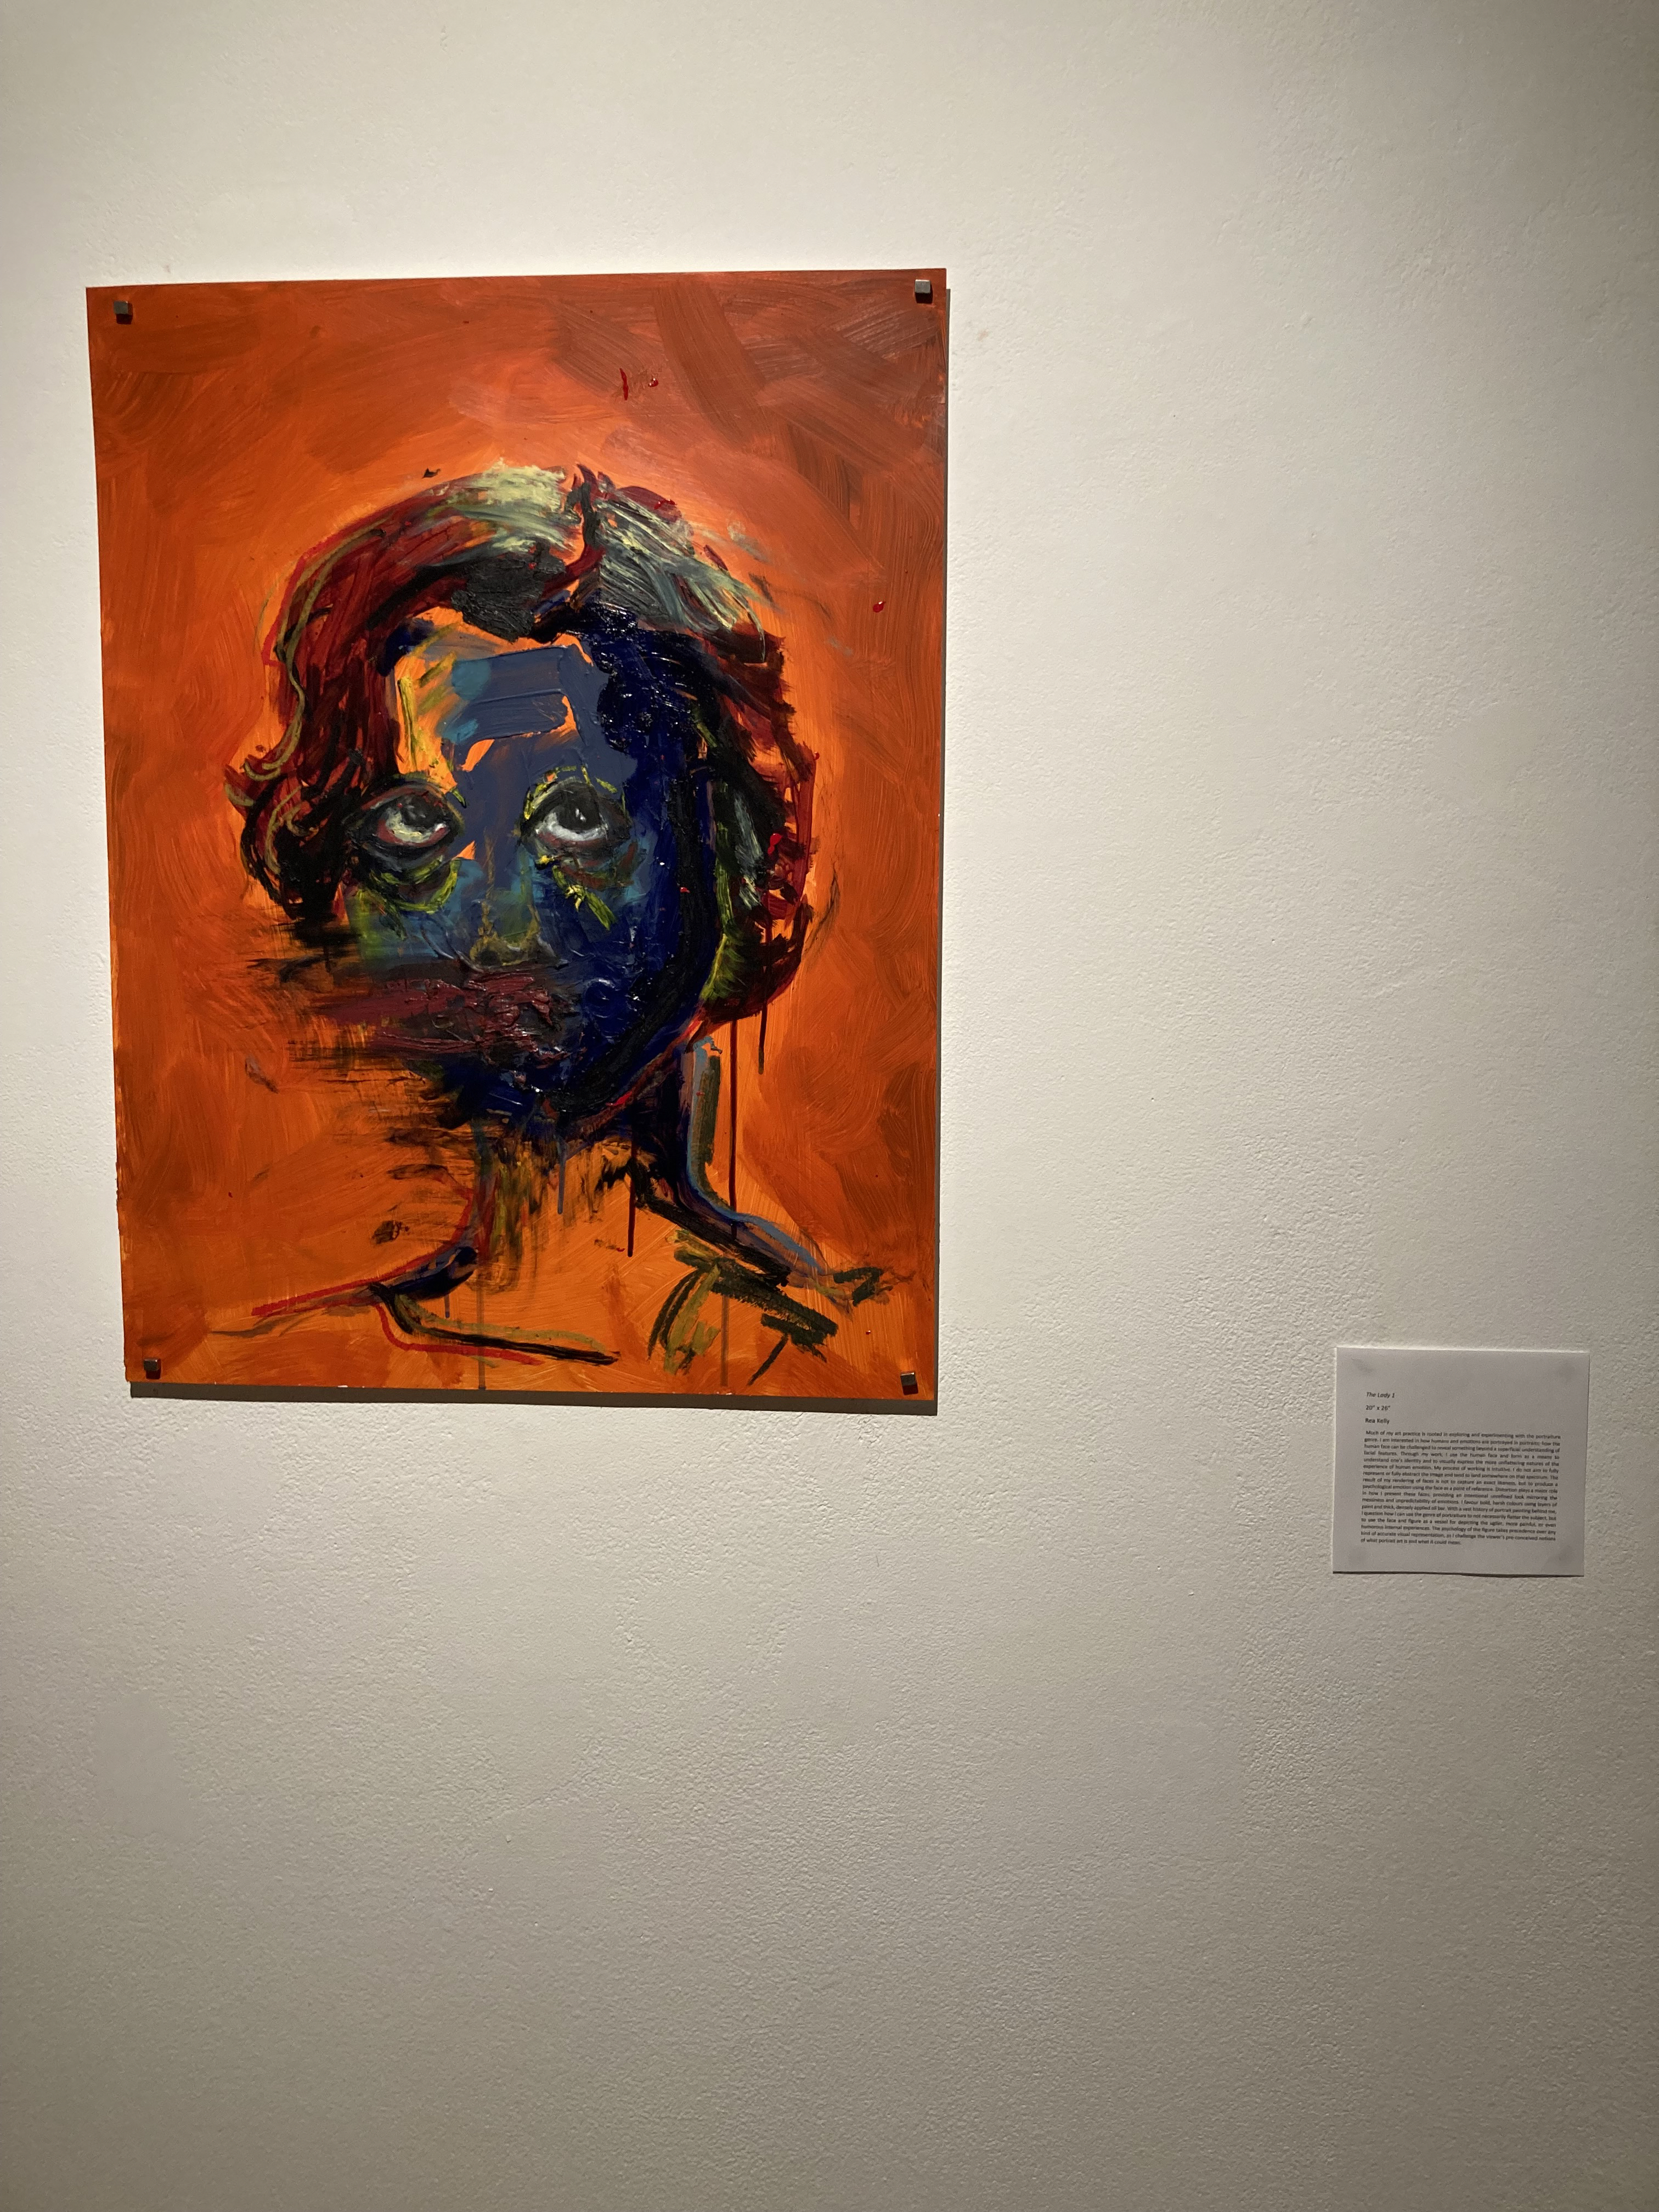 Mental health depicted in art at Niagara Arts Centre's latest exhibit